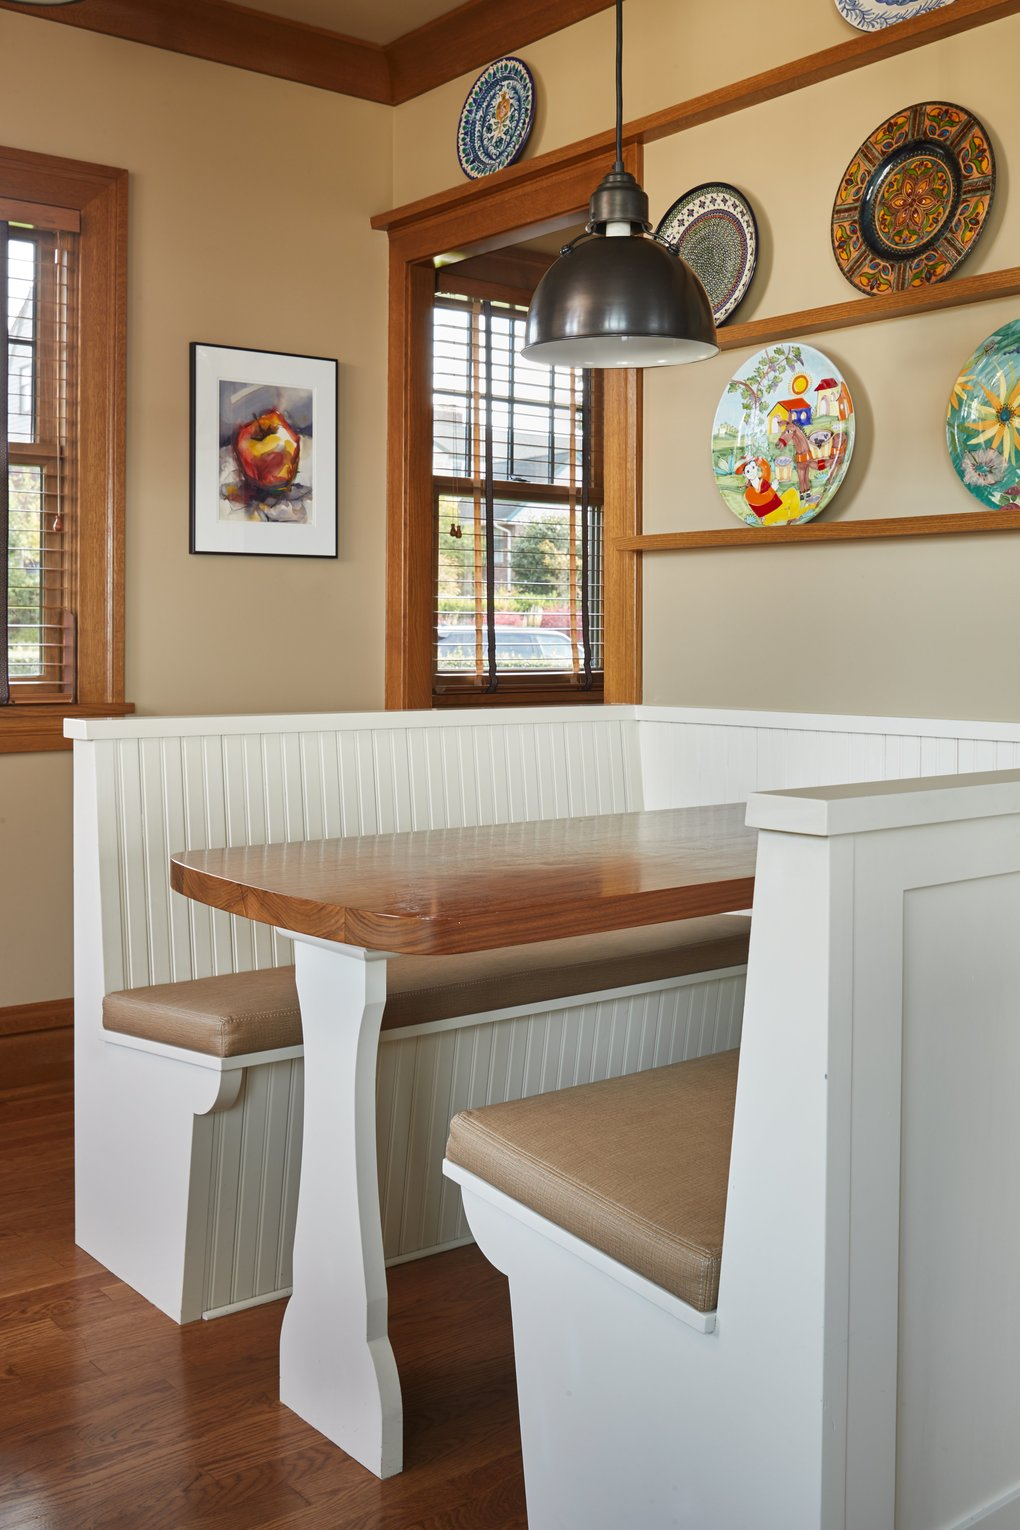 """Miller added display shelves for Kim's """"extensive plate collection,"""" and this built-in breakfast booth near the hallway and service stairs is wired with power and an internet connection so she and Rob """"can take care of morning business.""""  (Benjamin Benschneider/The Seattle Times)"""